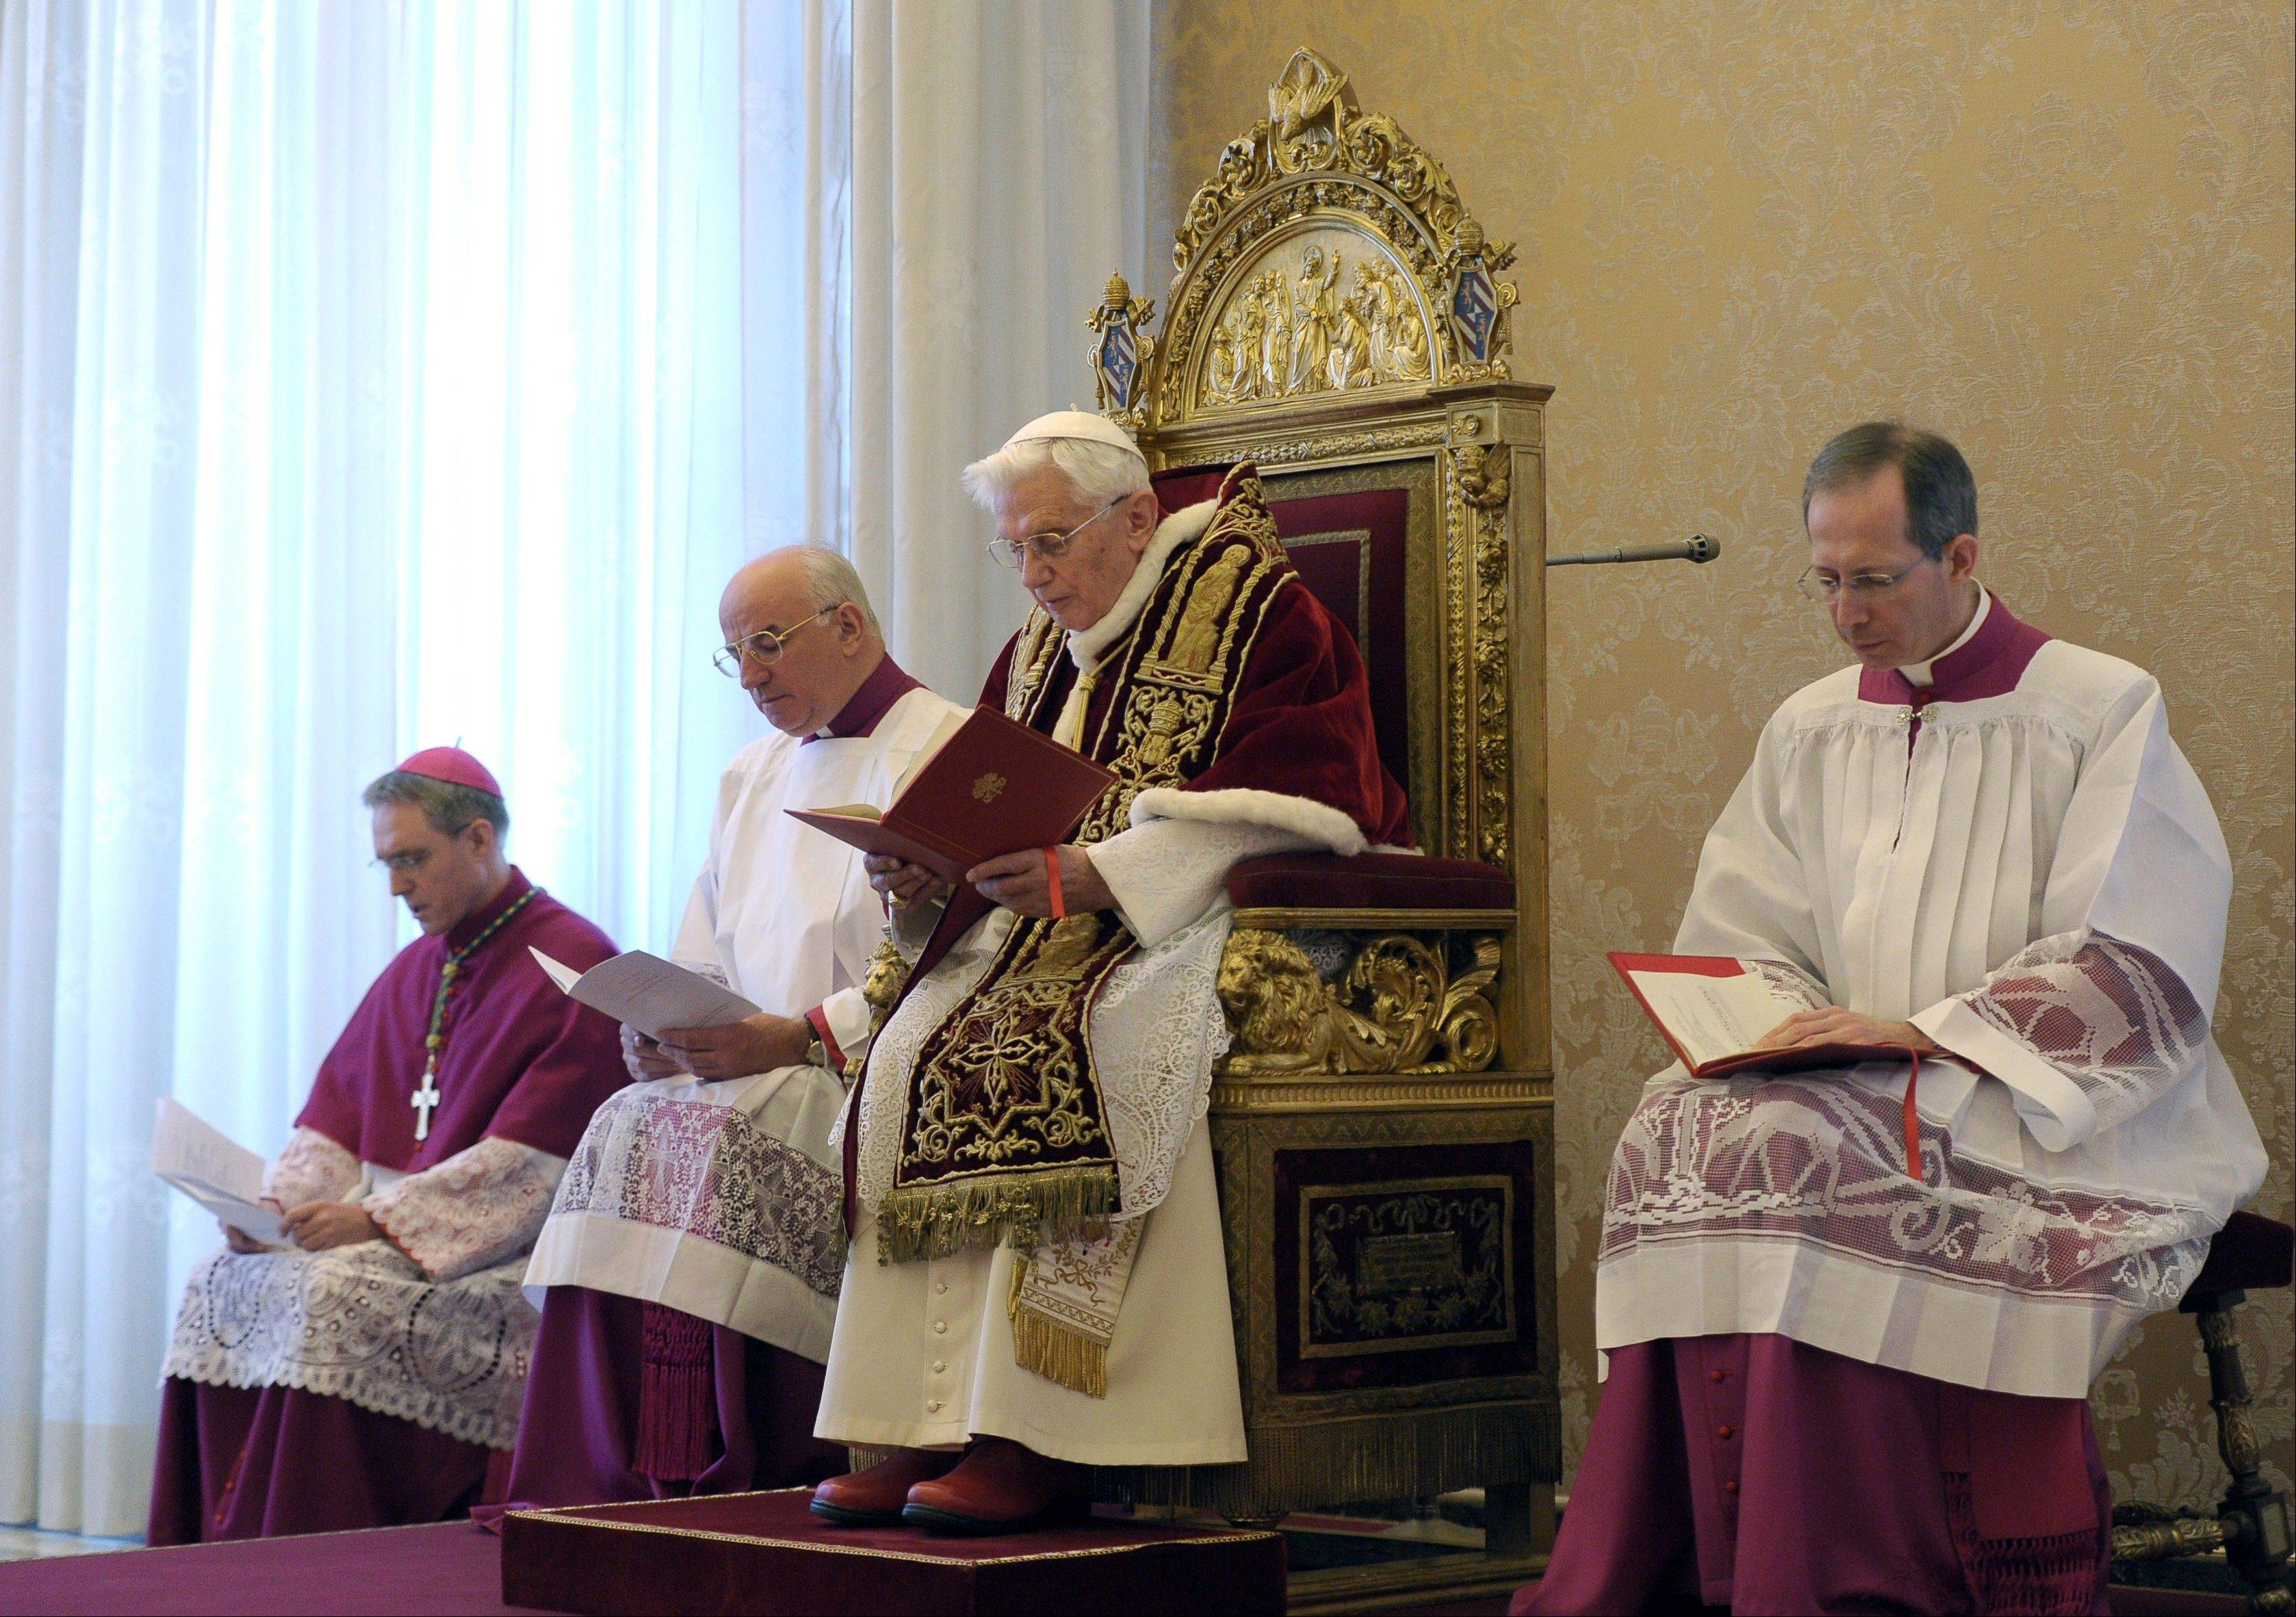 Pope Benedict XVI, third from left, delivers his message Monday at the end of a meeting of Vatican cardinals.